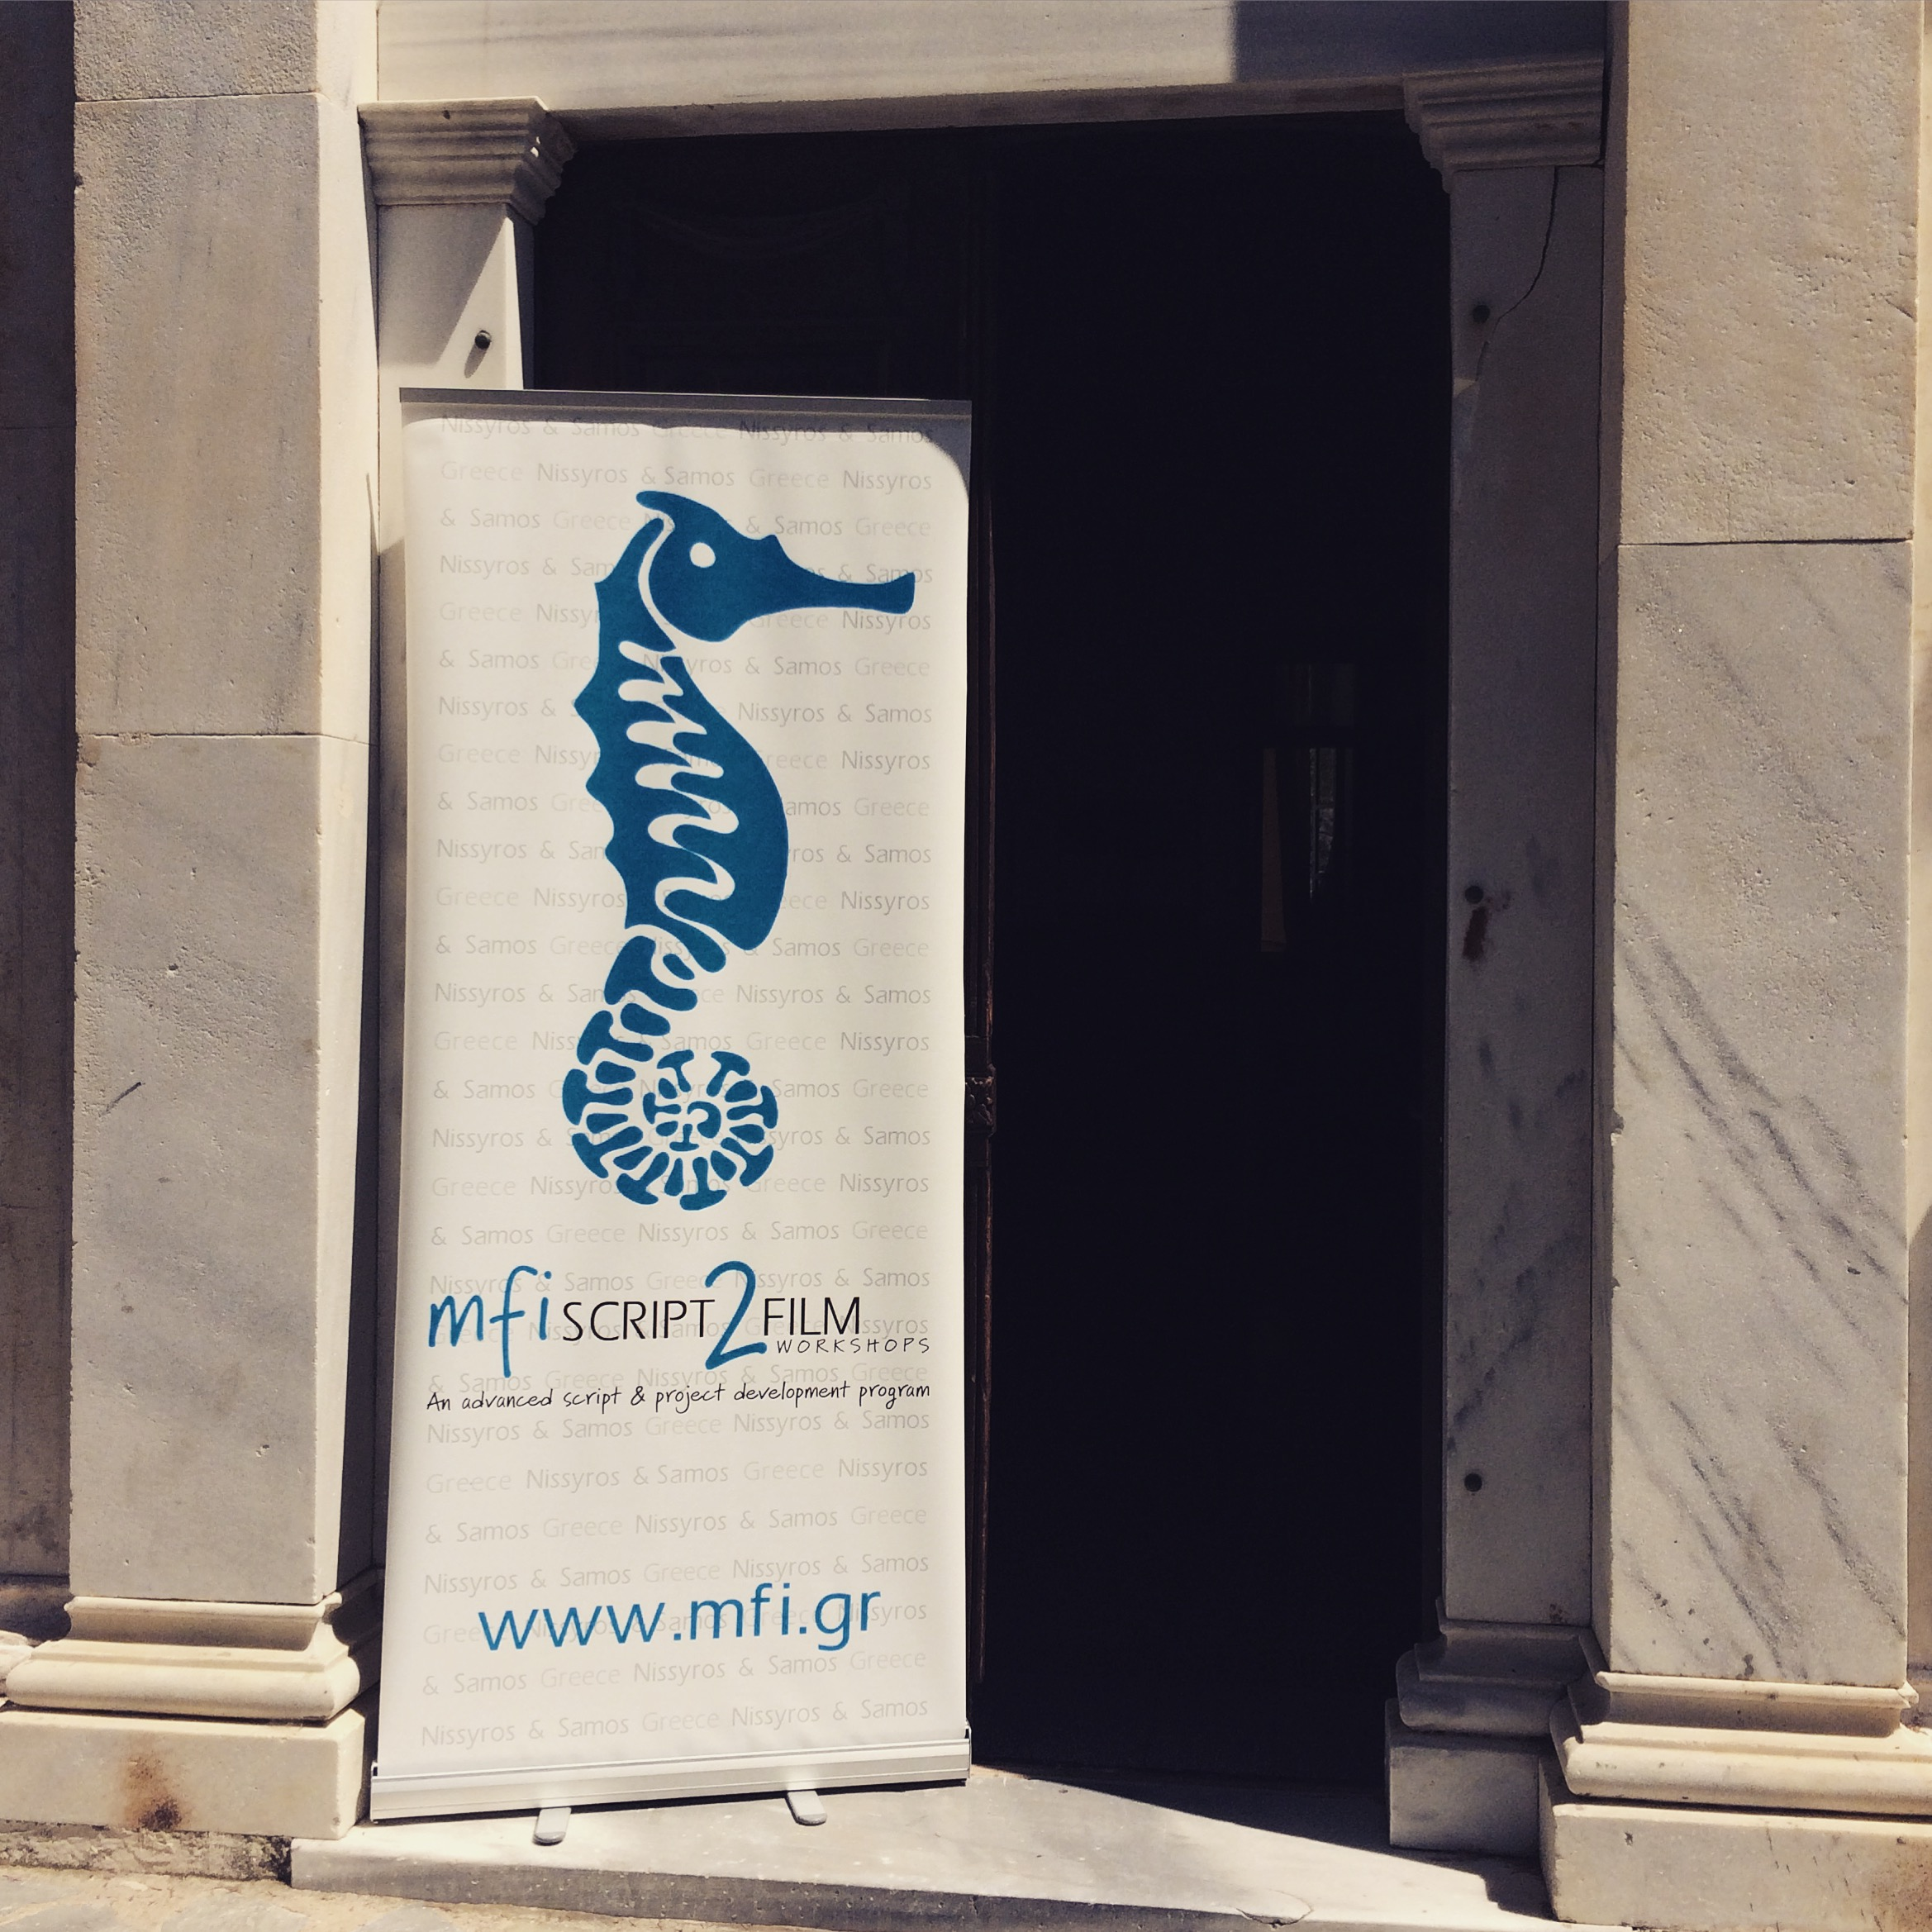 Follow the sea horse not to miss the workshops' training activities.